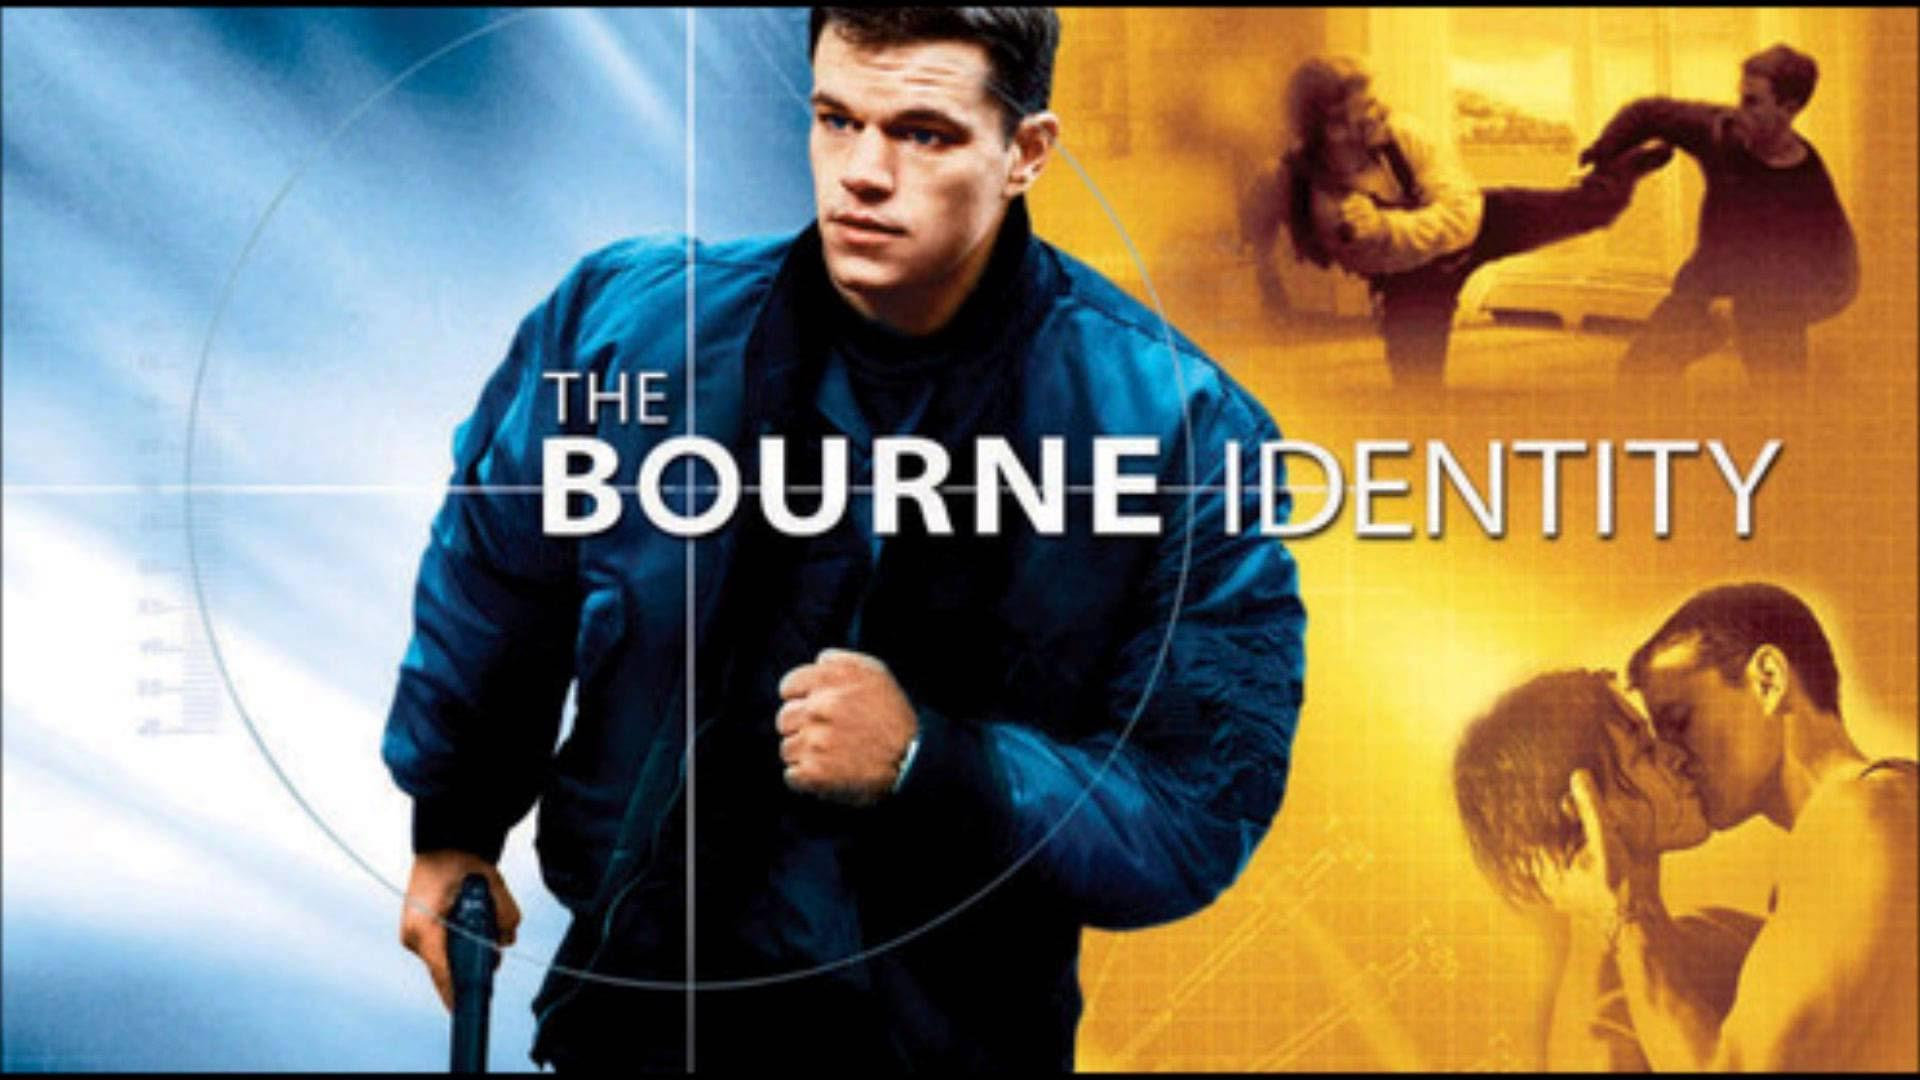 Best 47+ The Bourne Supremacy Wallpapers on HipWallpapers